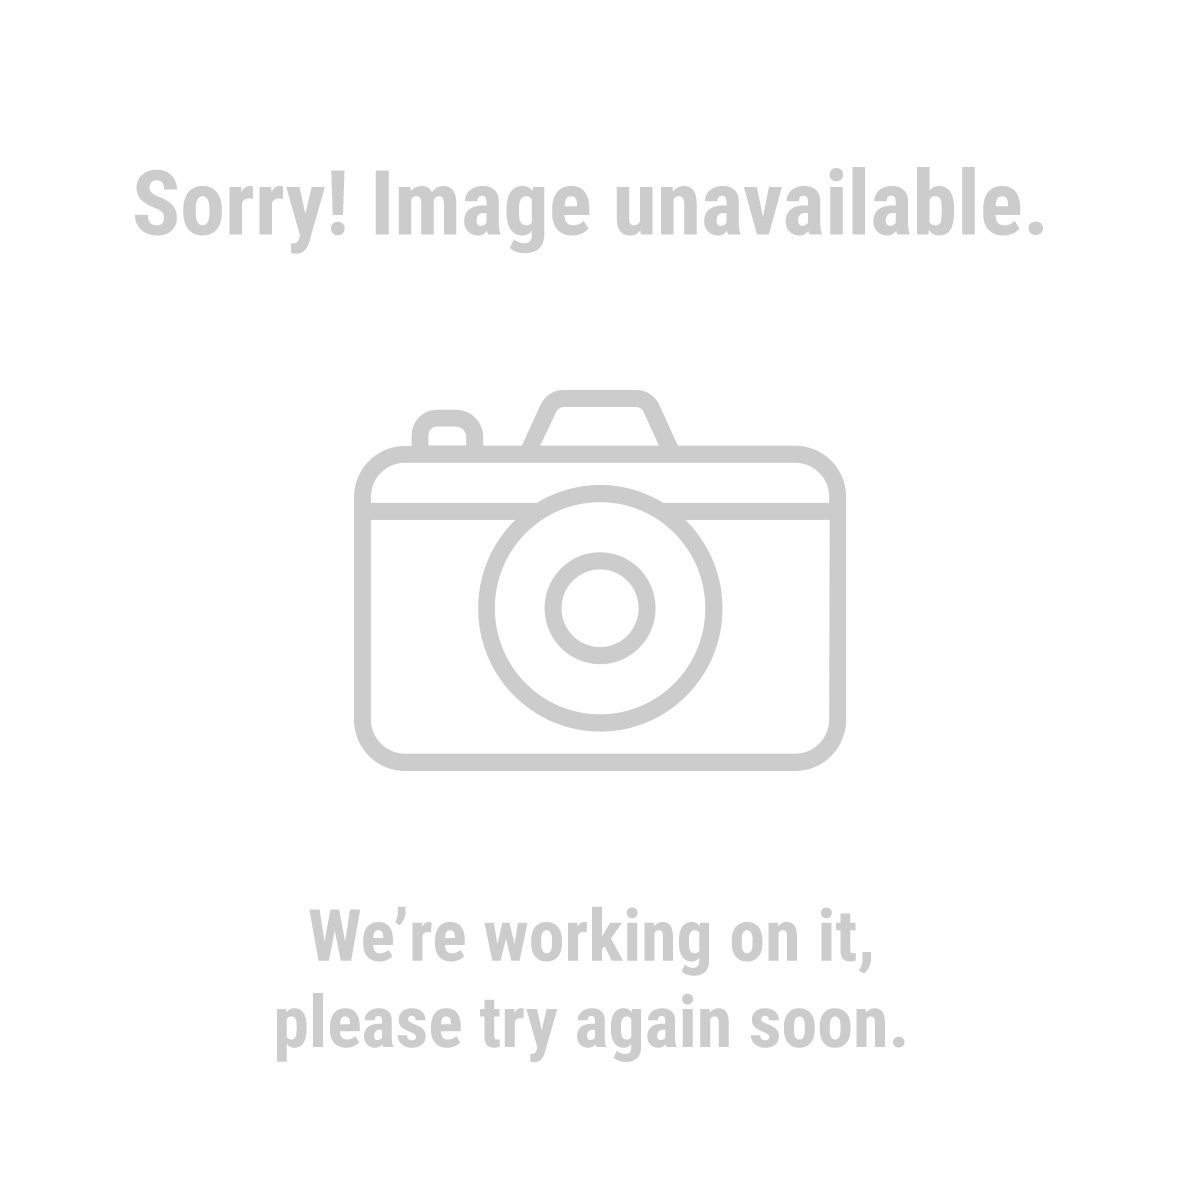 Chicago Electric Power Tools 61608 4 in. Mighty-Mite Table Saw